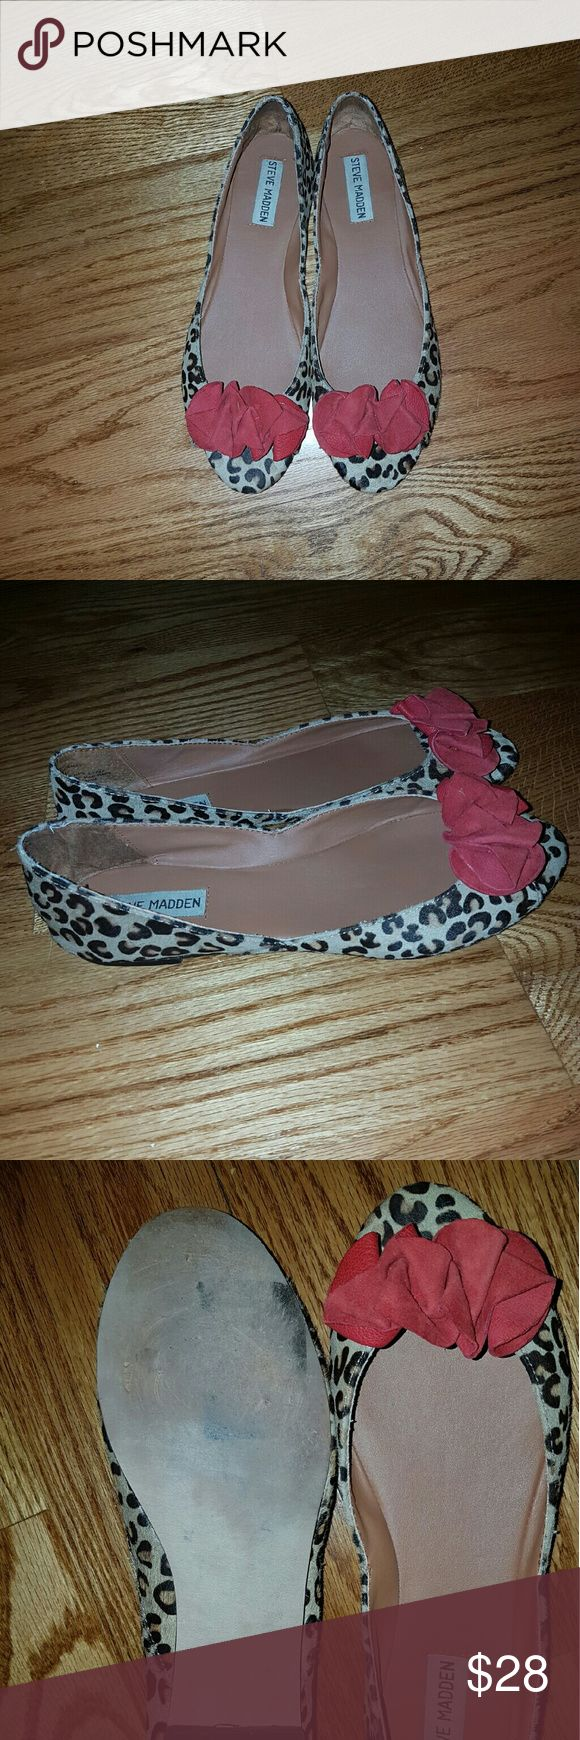 Steve Madden Open Toe Flats Cheetah print open toe flats by Steve Madden. Size US 8 in a great condition. Worn them few times. These beauties don't fit me anymore. Hopefully, they will find a new home. Steve Madden Shoes Flats & Loafers